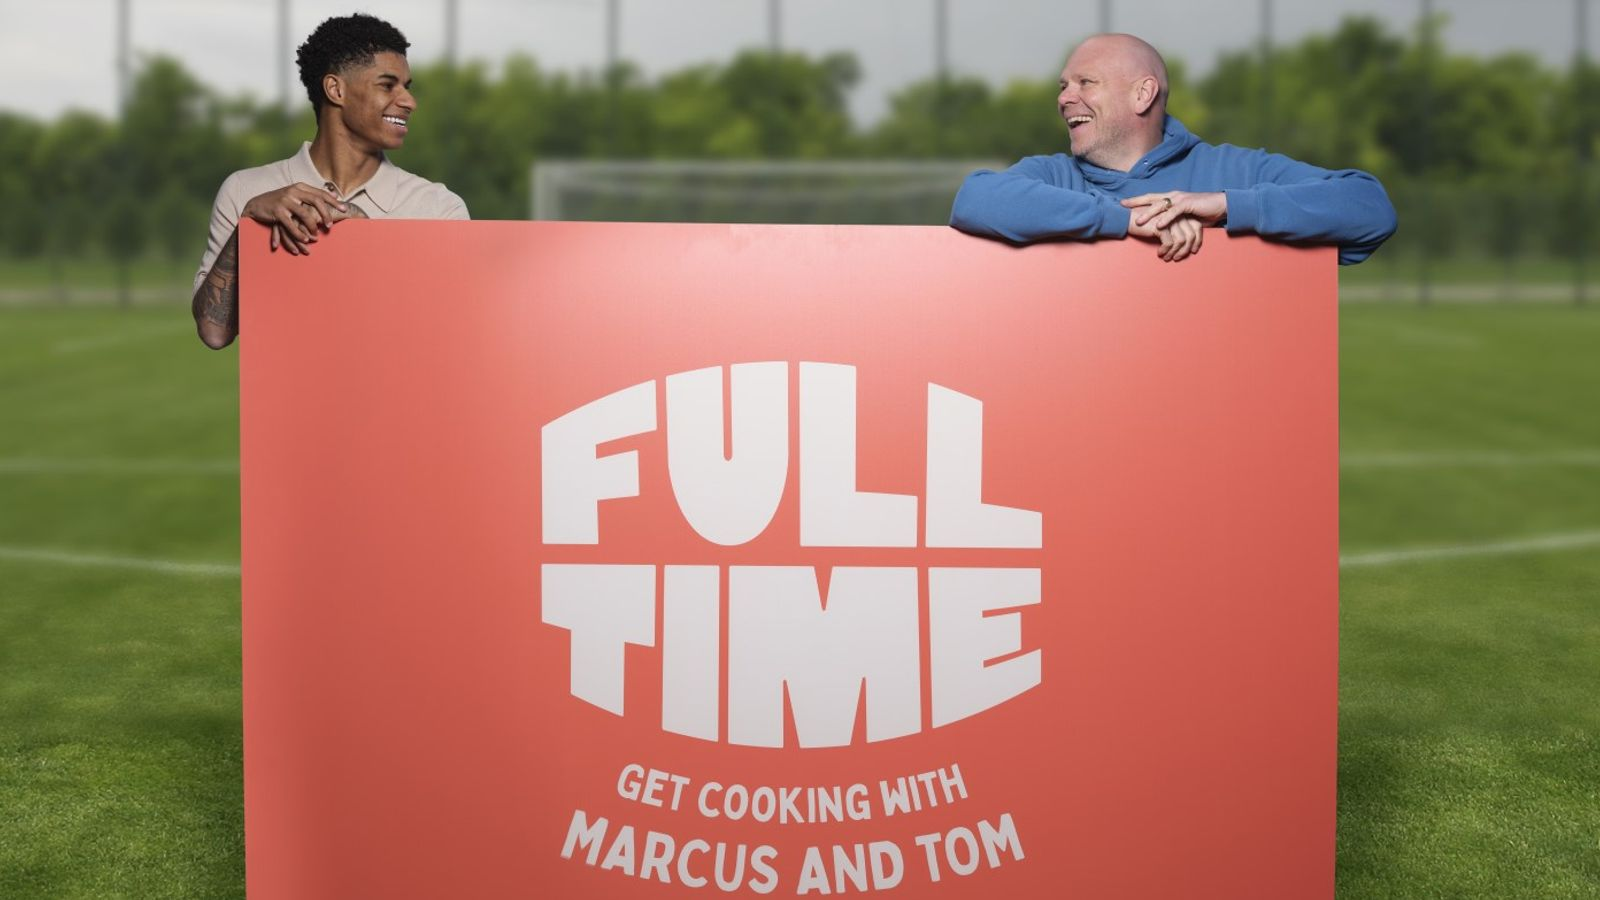 Marcus Rashford aims to give food poverty the boot as he and top chef Tom Kerridge team up for Instagram cooking tutorials